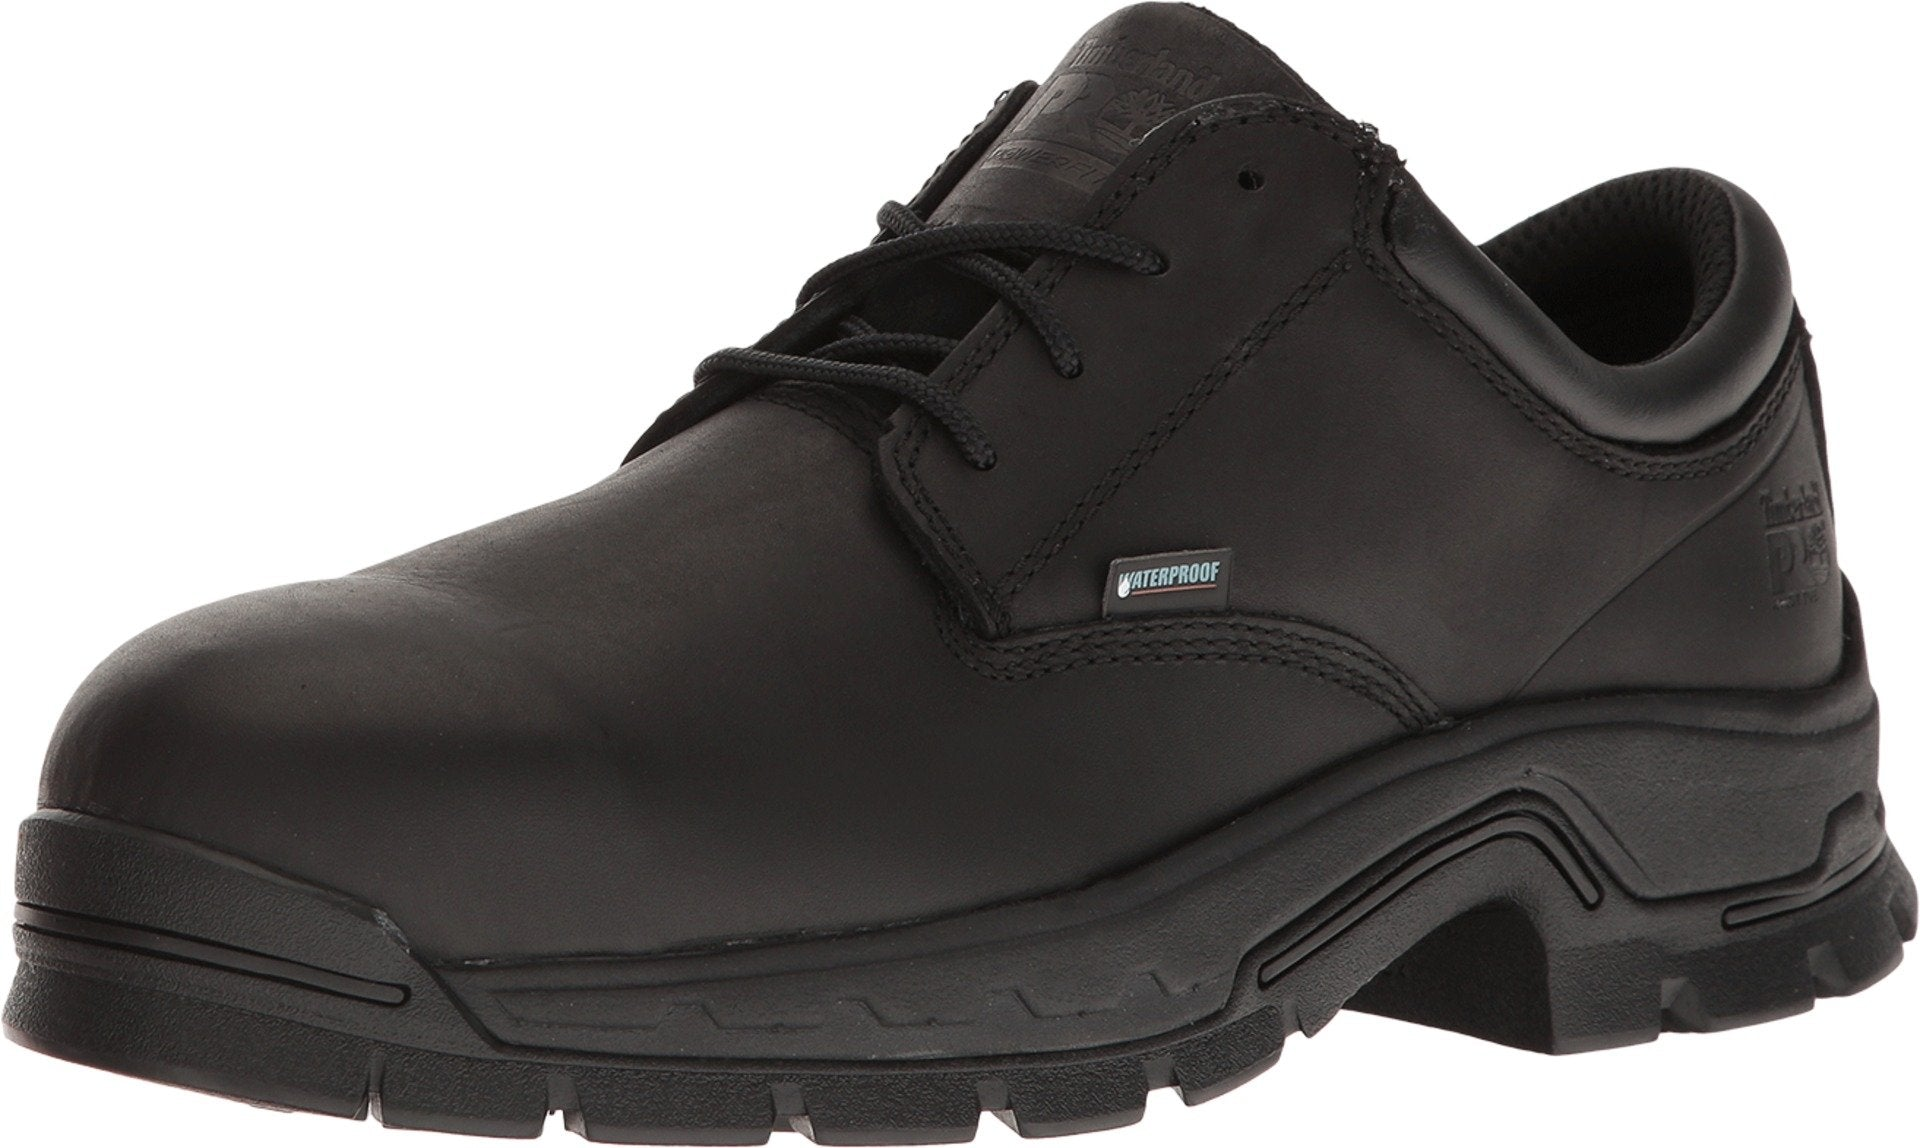 6412d07257d Timberland PRO Stockdale Alloy Safety Toe Waterproof Boot